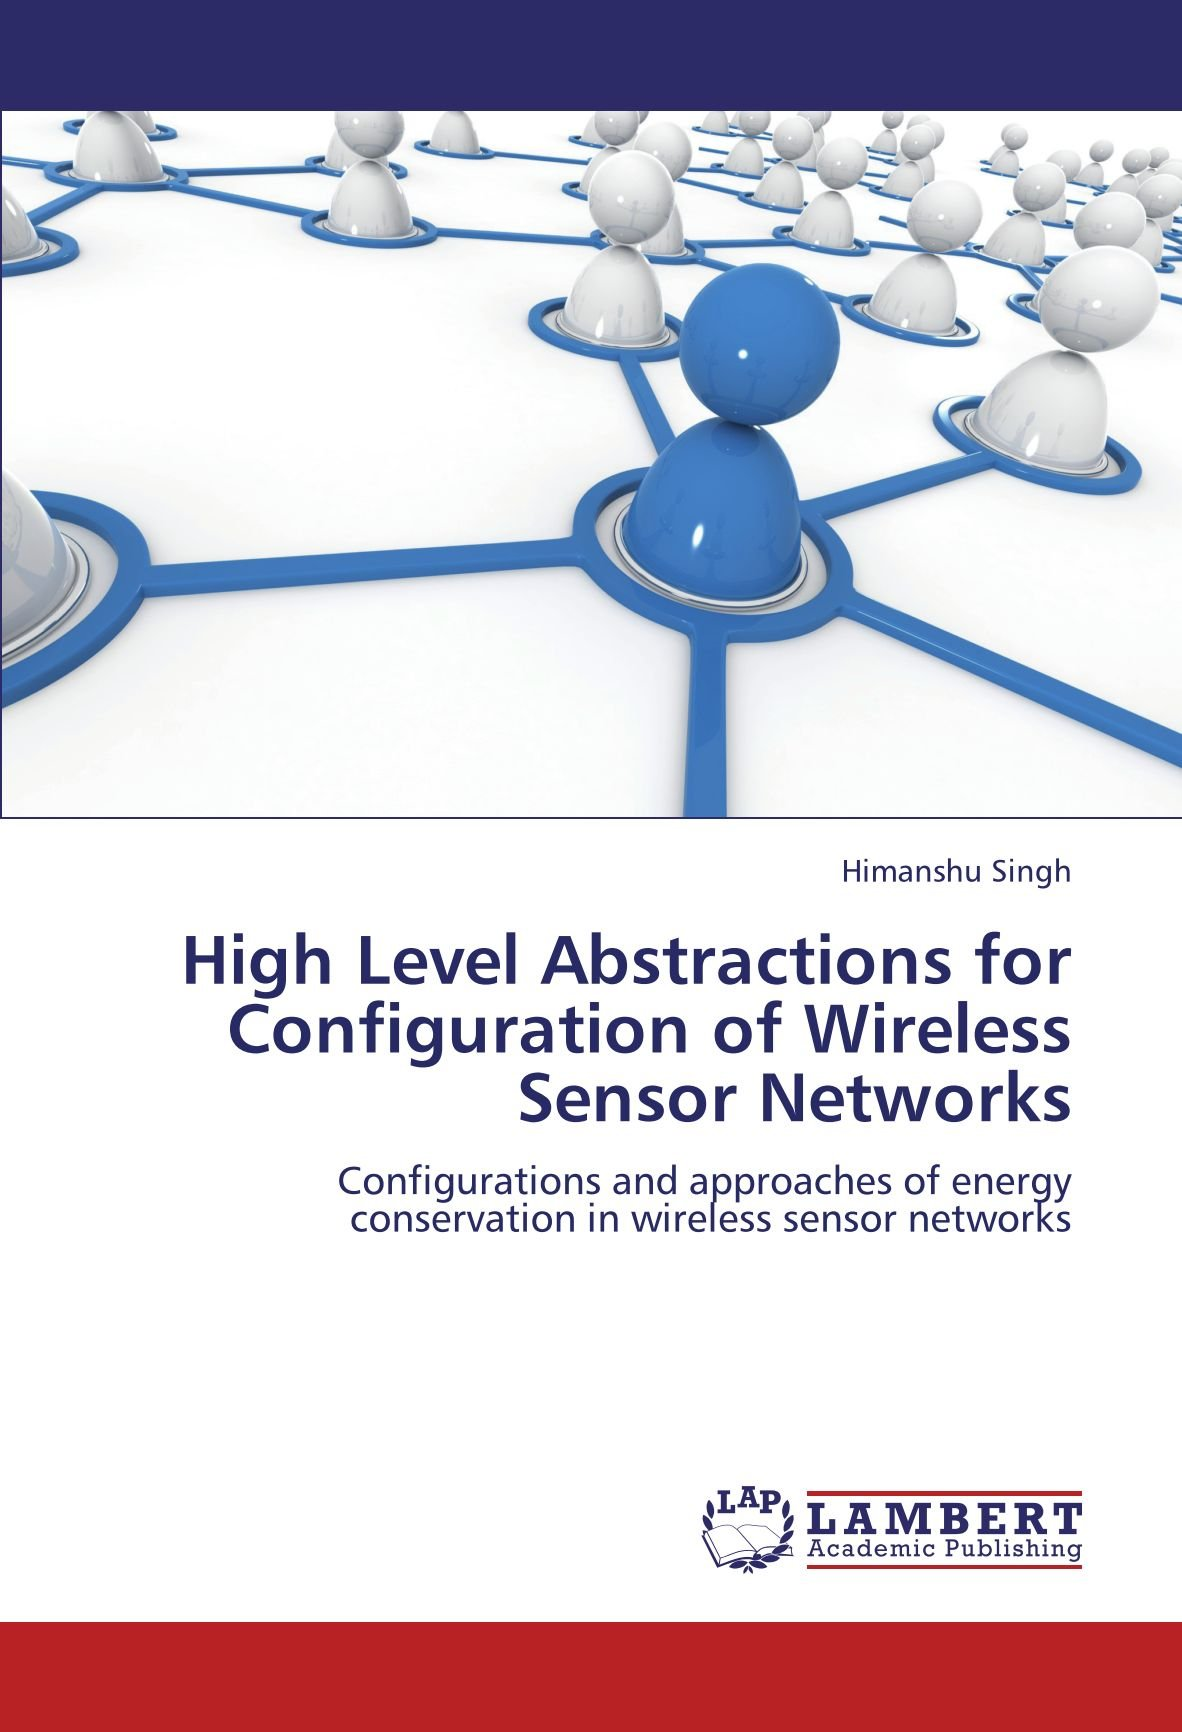 Download High Level Abstractions for Configuration of Wireless Sensor Networks: Configurations and approaches of energy conservation in wireless sensor networks pdf